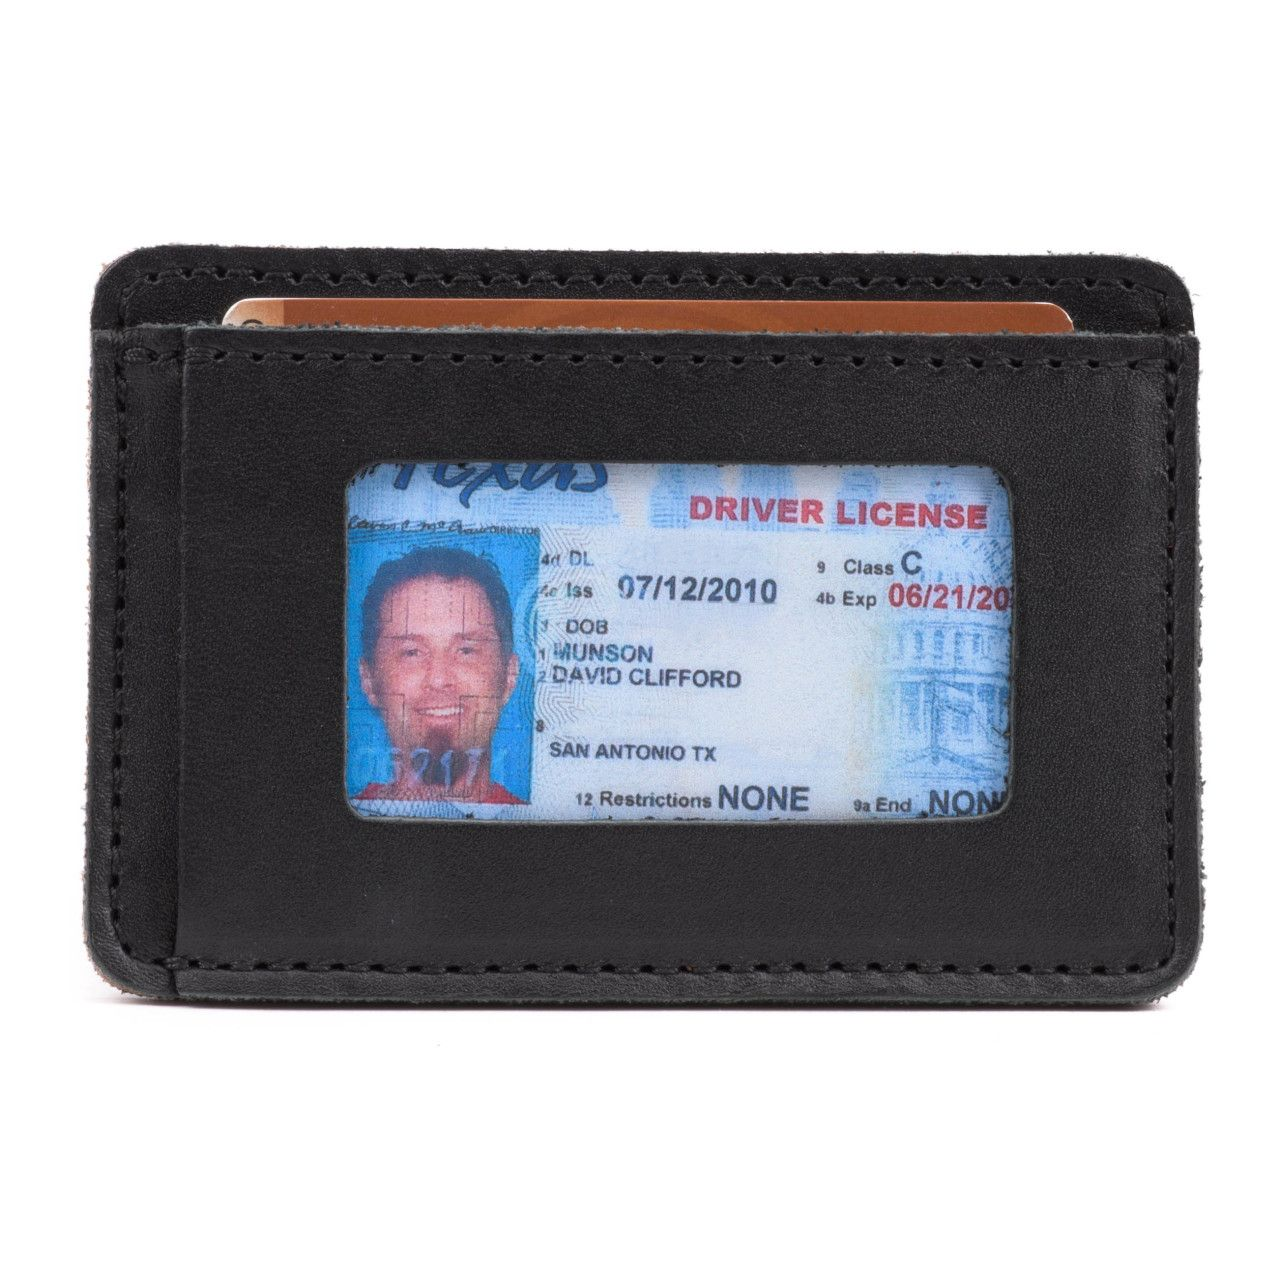 leather front pocket wallet in black leather with a visible driving license